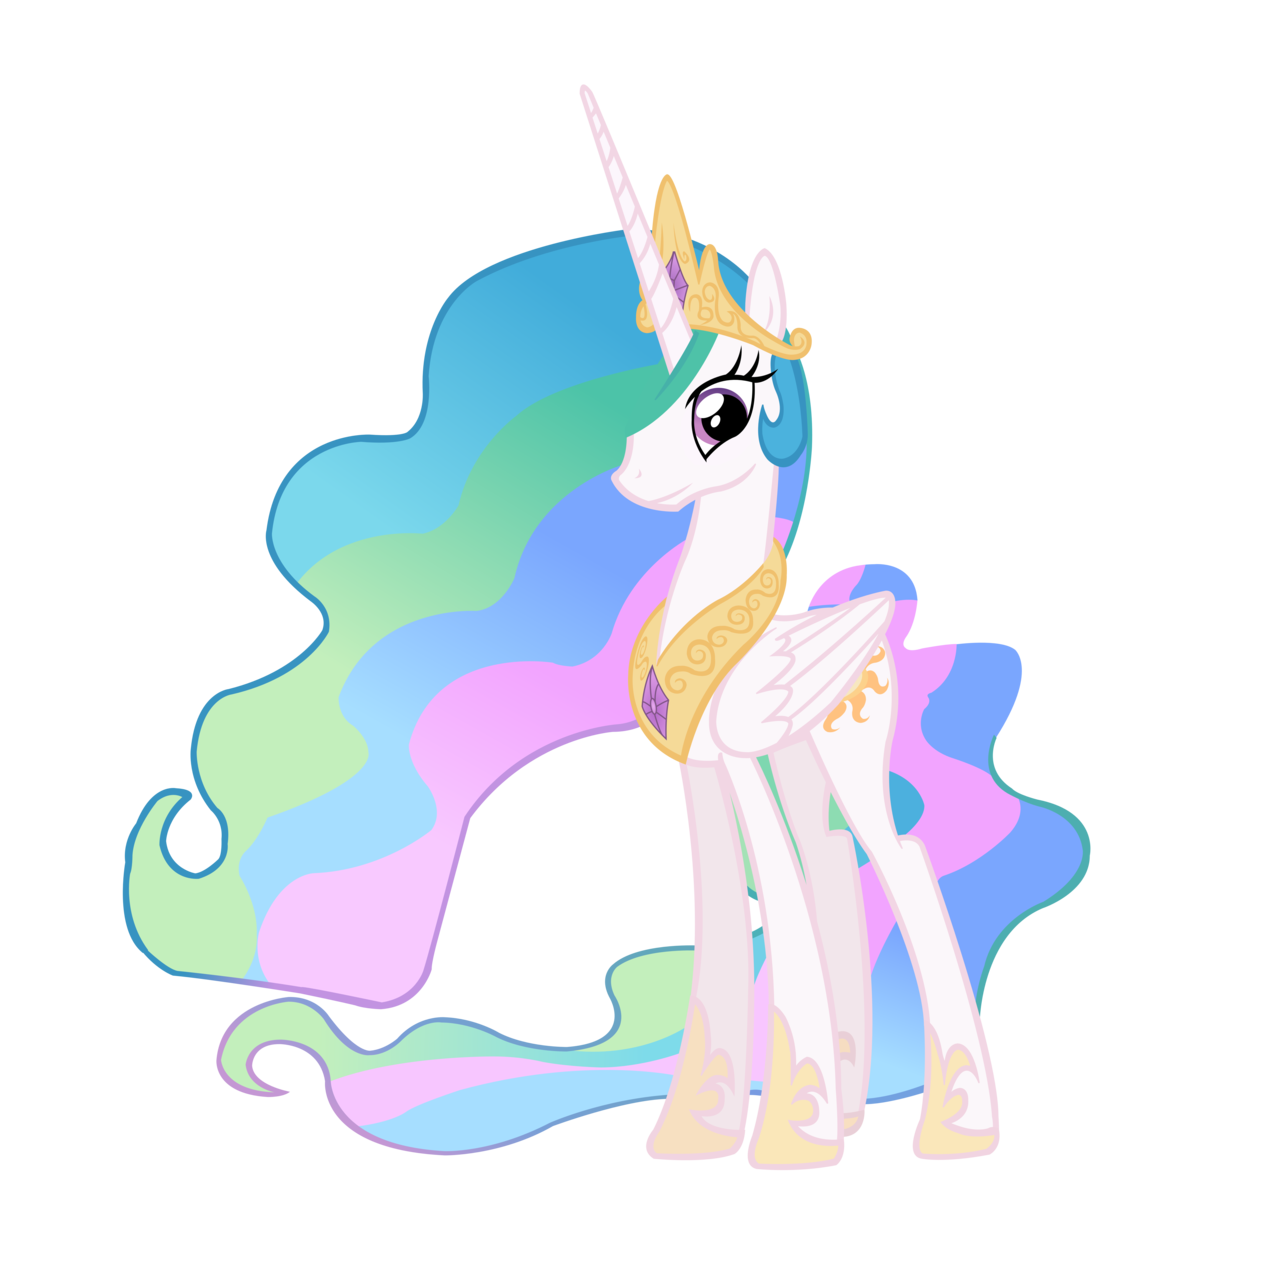 Princess Celestia My Little Pony Infinite Loops Wiki